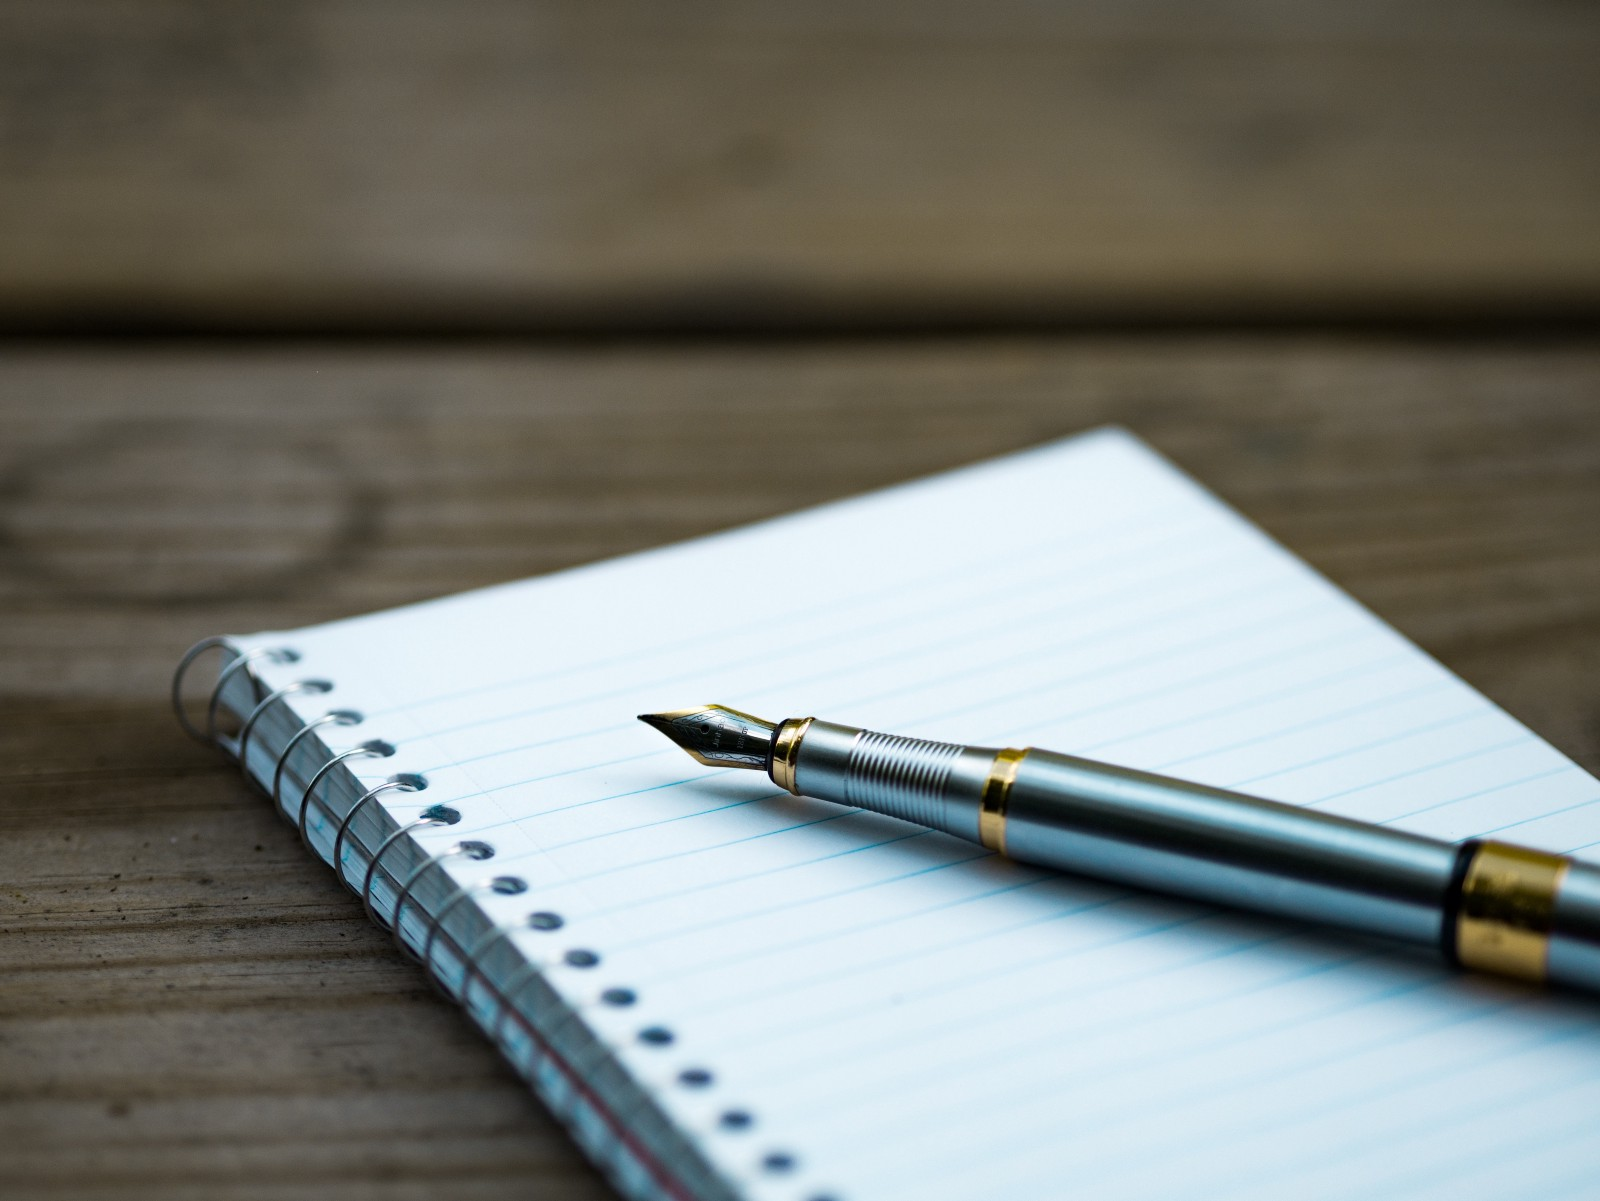 i write best 100 words article for you